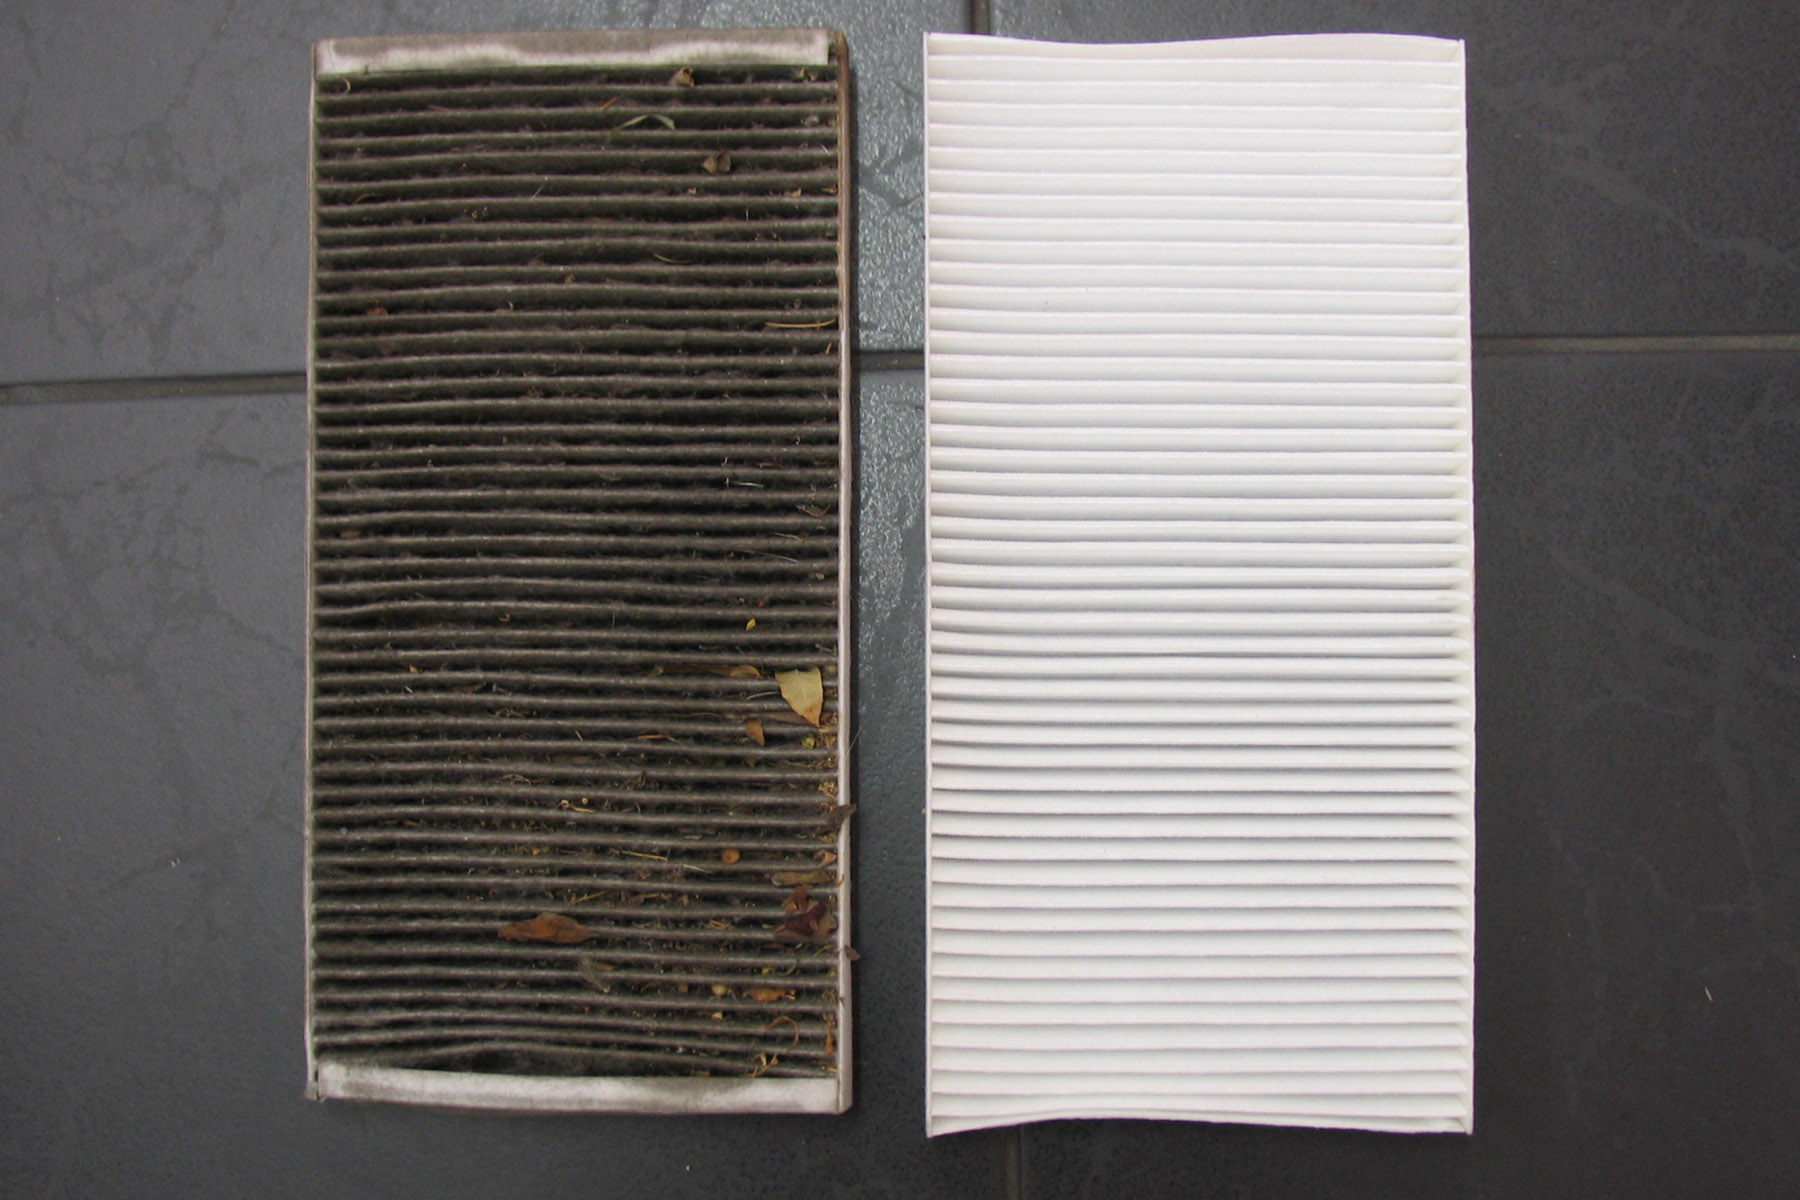 Time To Get Your Cabin Air Filter Checked!